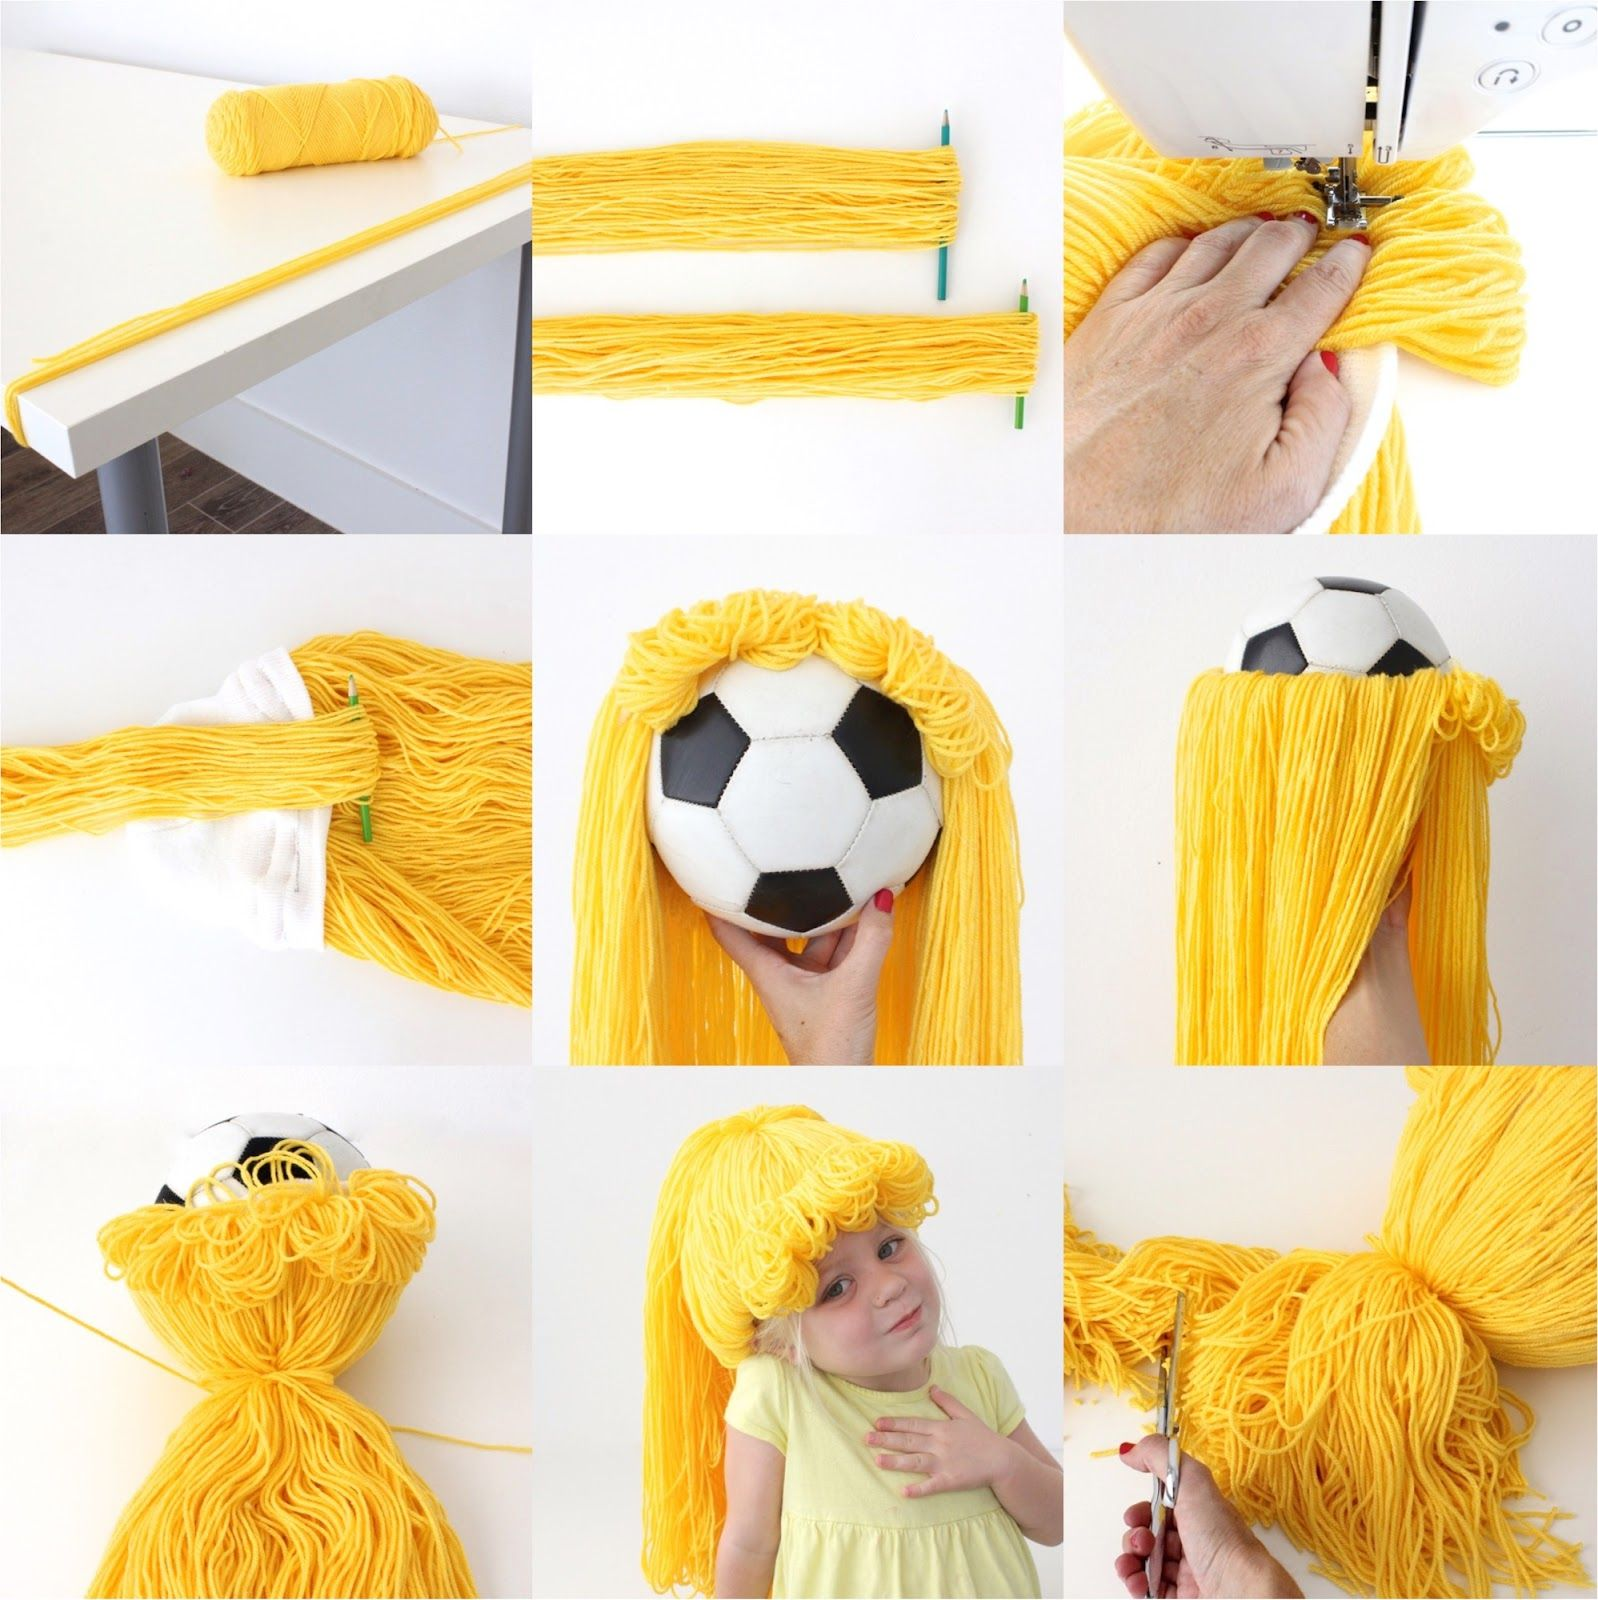 Make A Yarn Wig 4 Ways Made Everyday Yarn Wig Crochet Wig Diy Wig